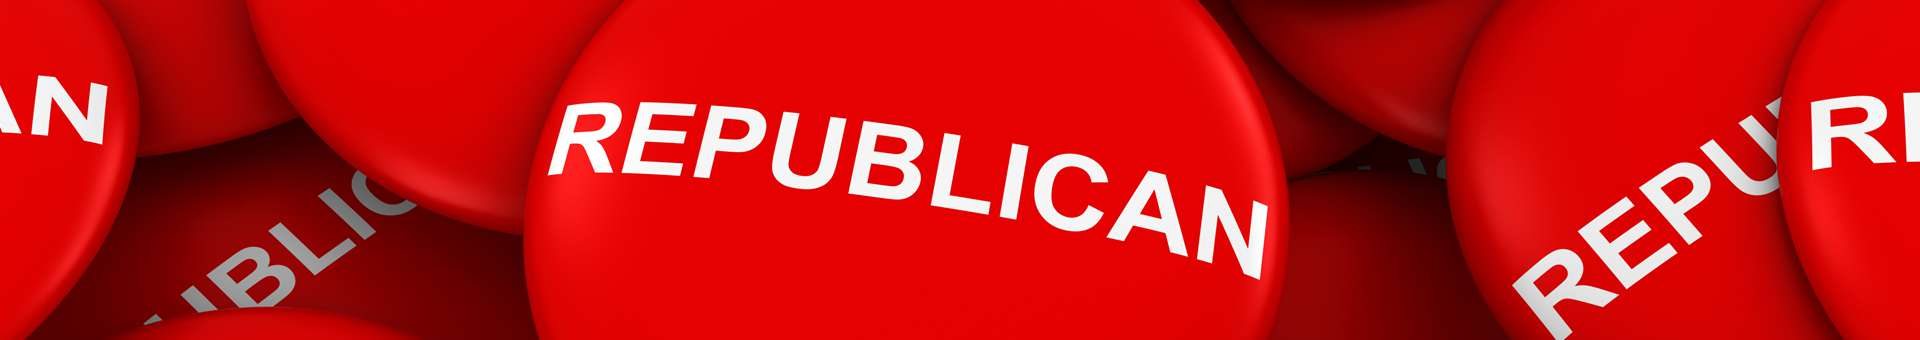 Search Whois information of domain names  .republican